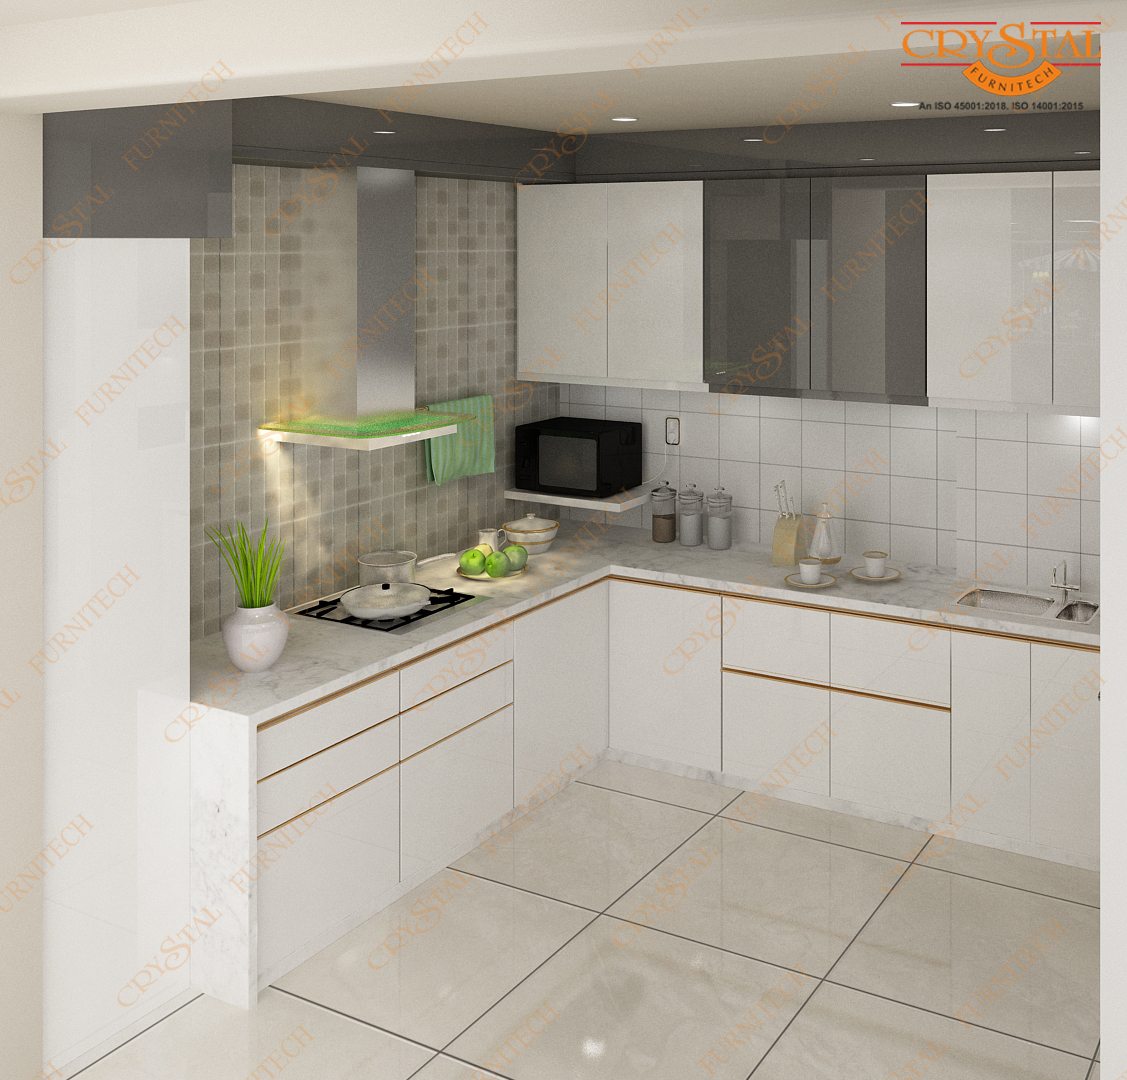 Get Enticed by Varied Types of Modular Kitchen Cabinets